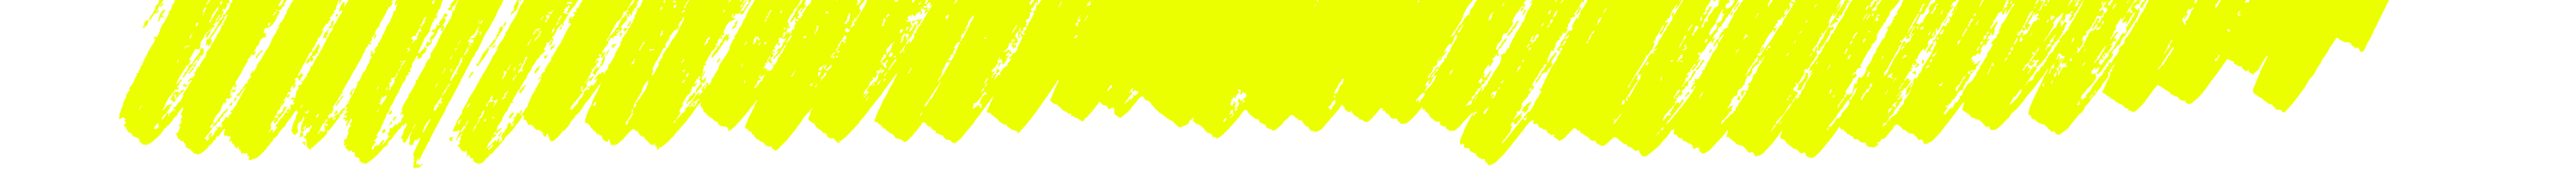 scribble-yellow6